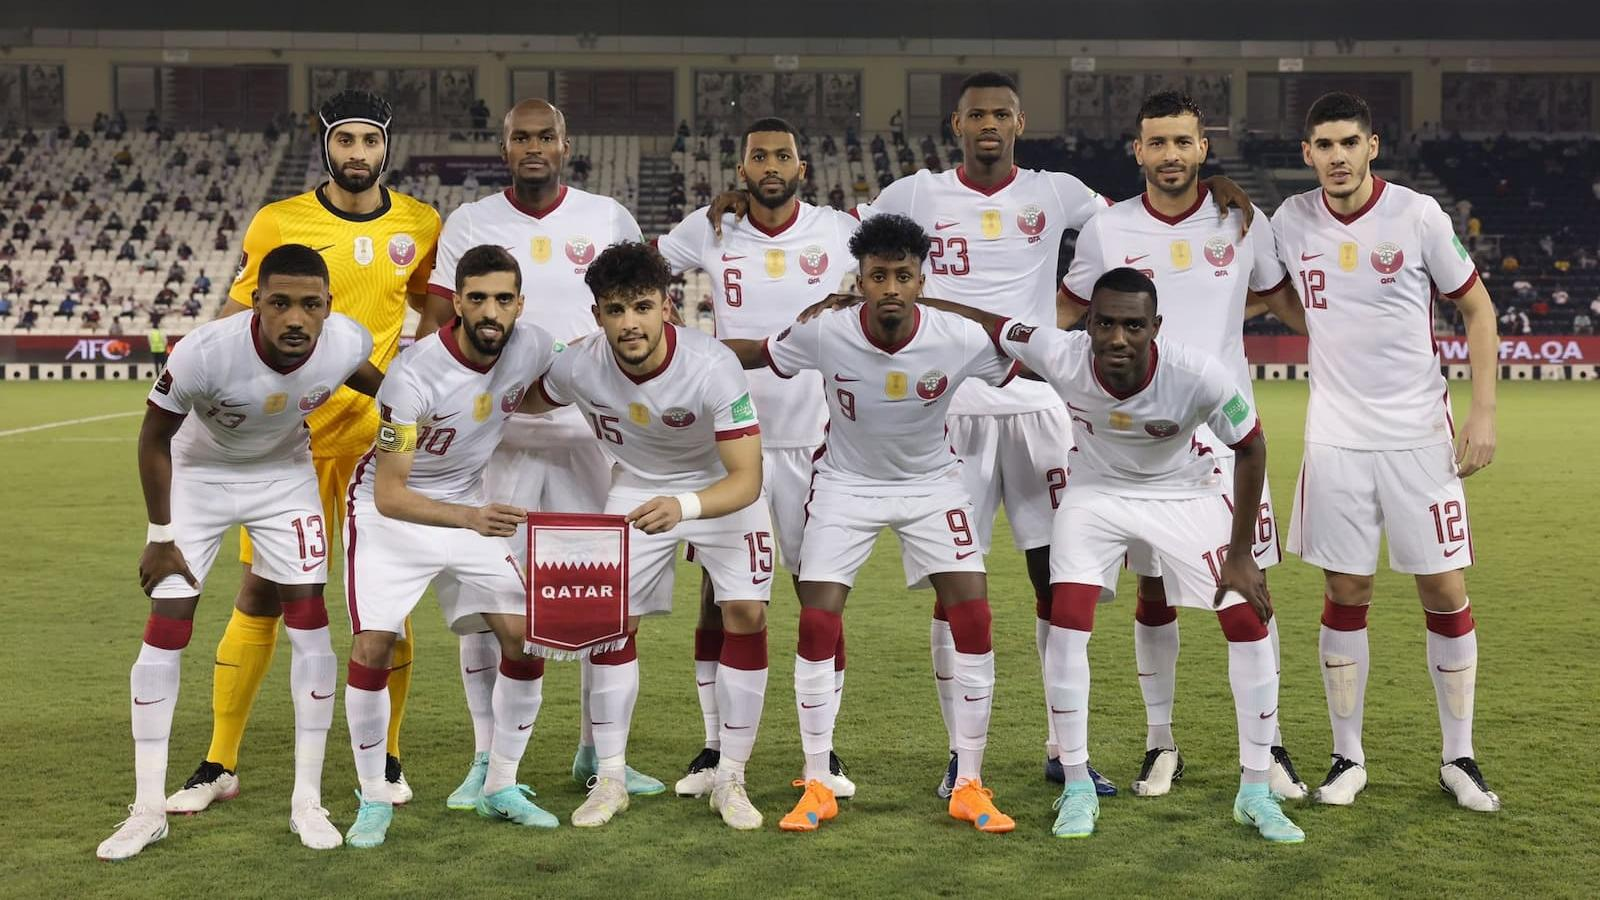 World Cup Qatar 2022 Qualifiers: Qatar take of Group E beating India 1-0